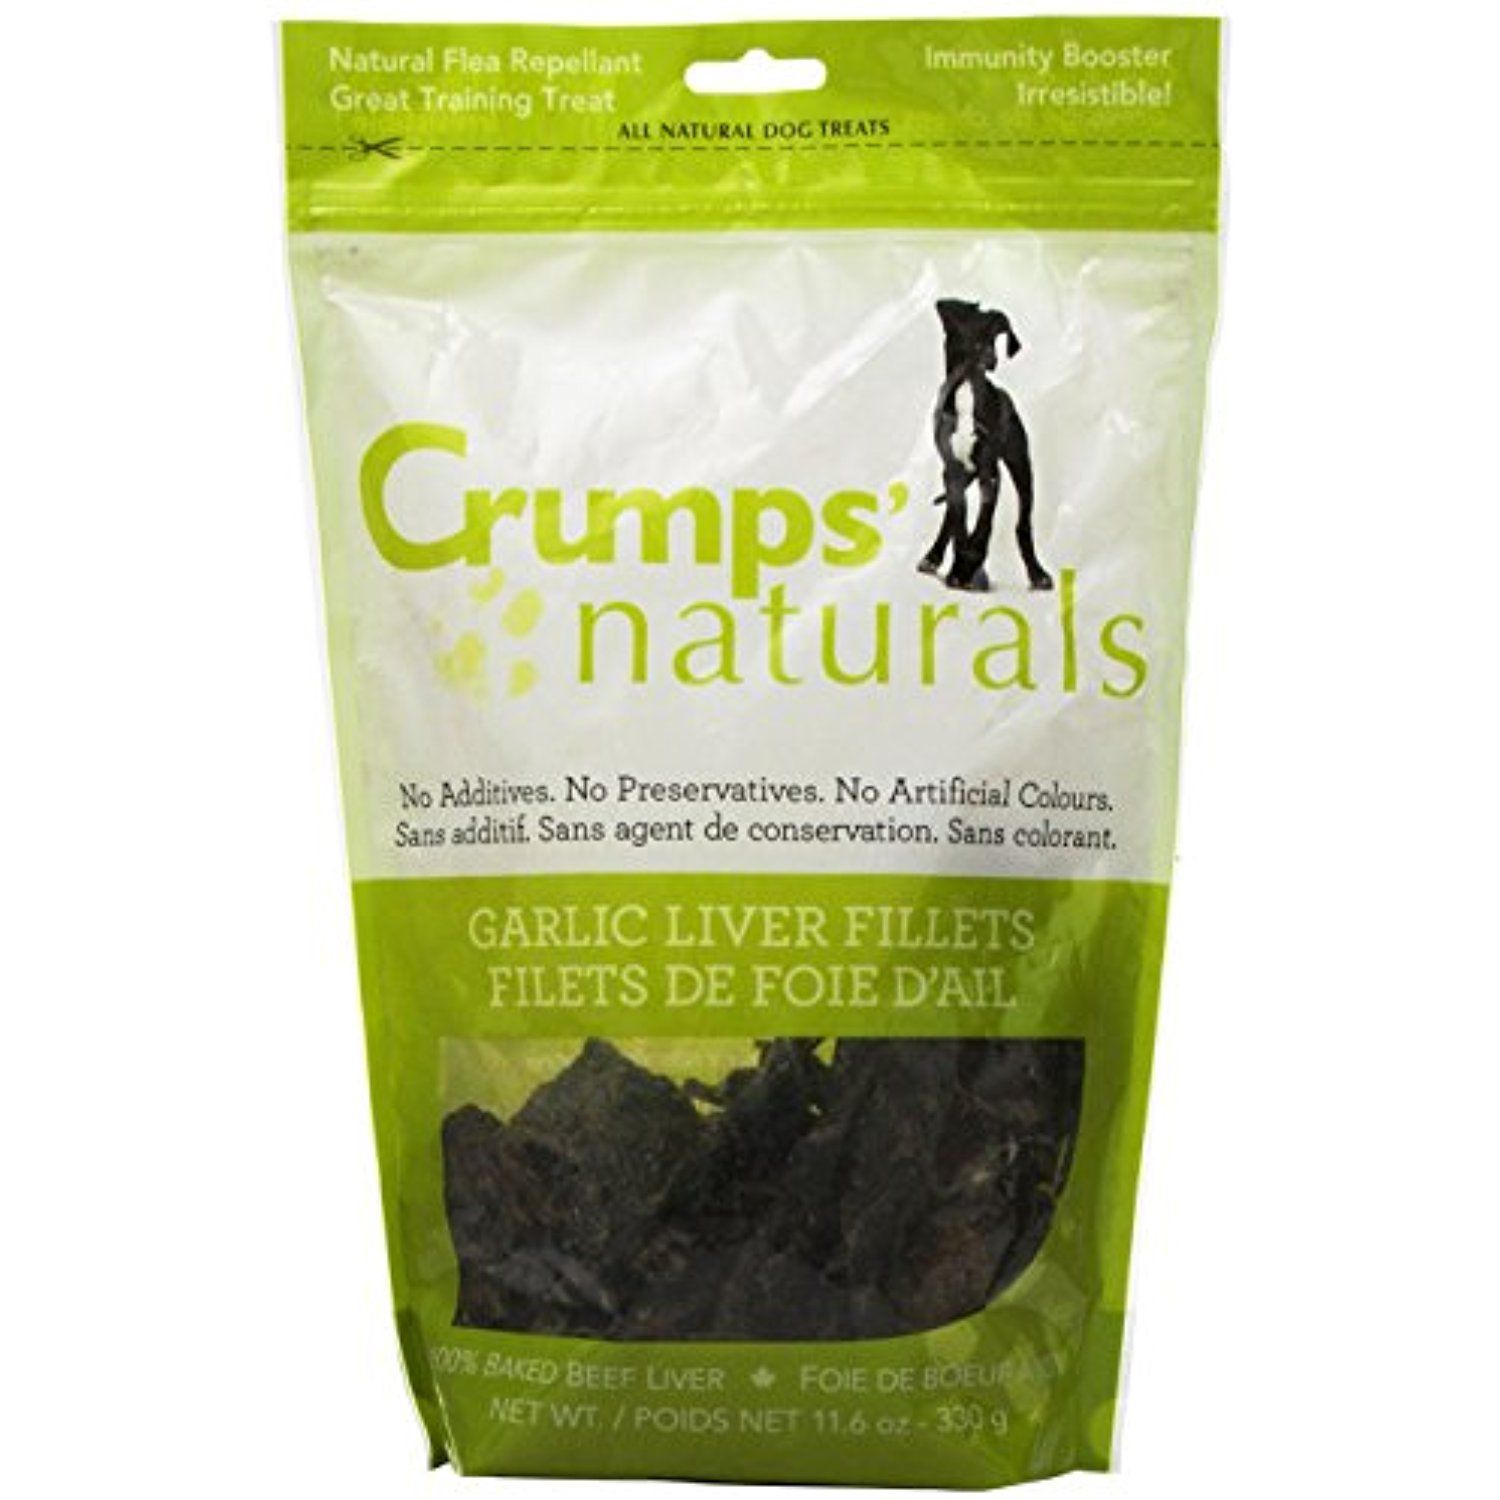 Crumps naturals traditional liver fillets with a hint of